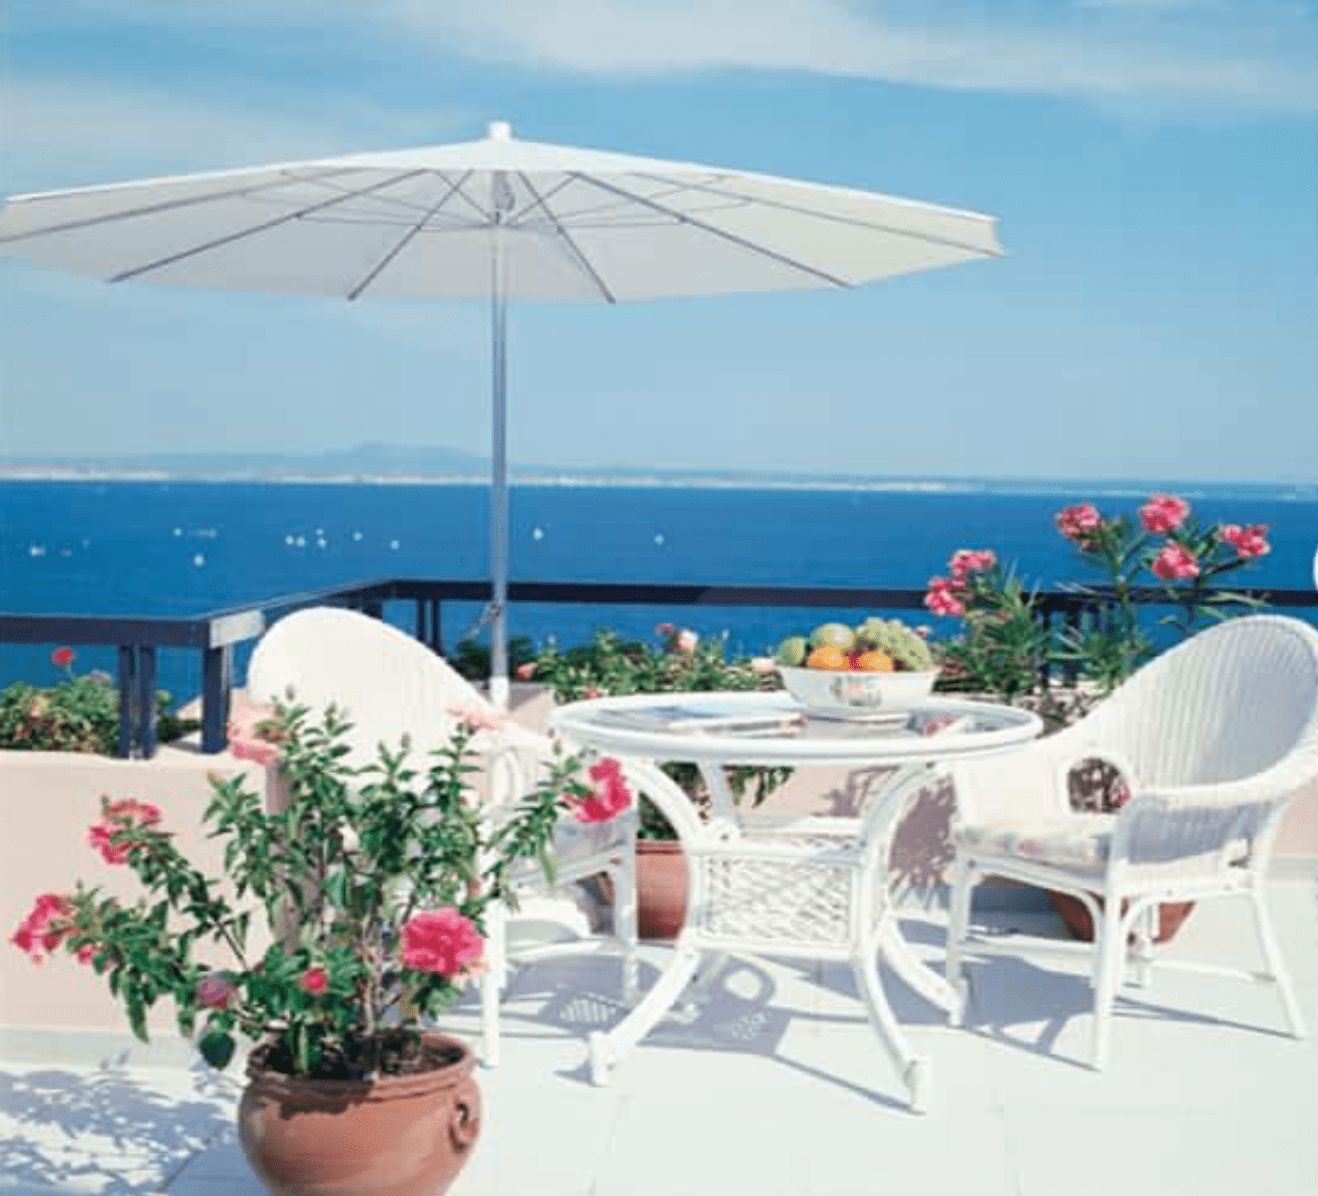 white outdoor table for two with umbrella with an ocean view